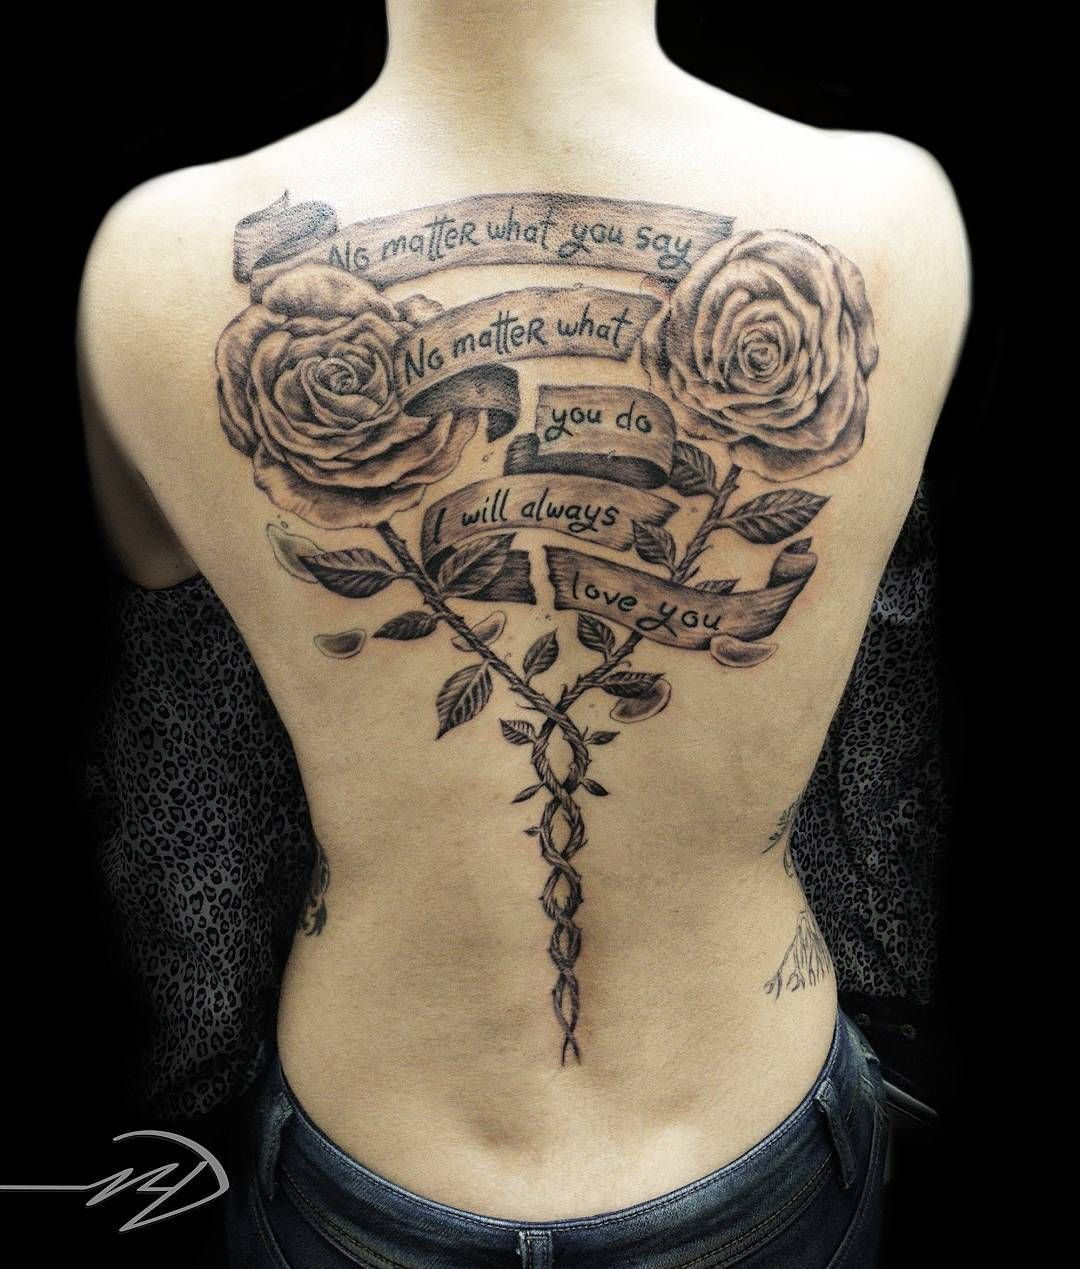 97b8eecf72f96 70 Latest Spine Tattoo Ideas for a Sexy Back Look. Intricately Detailed  Rose and Quote Upper Back and Spine Tattoo in Black